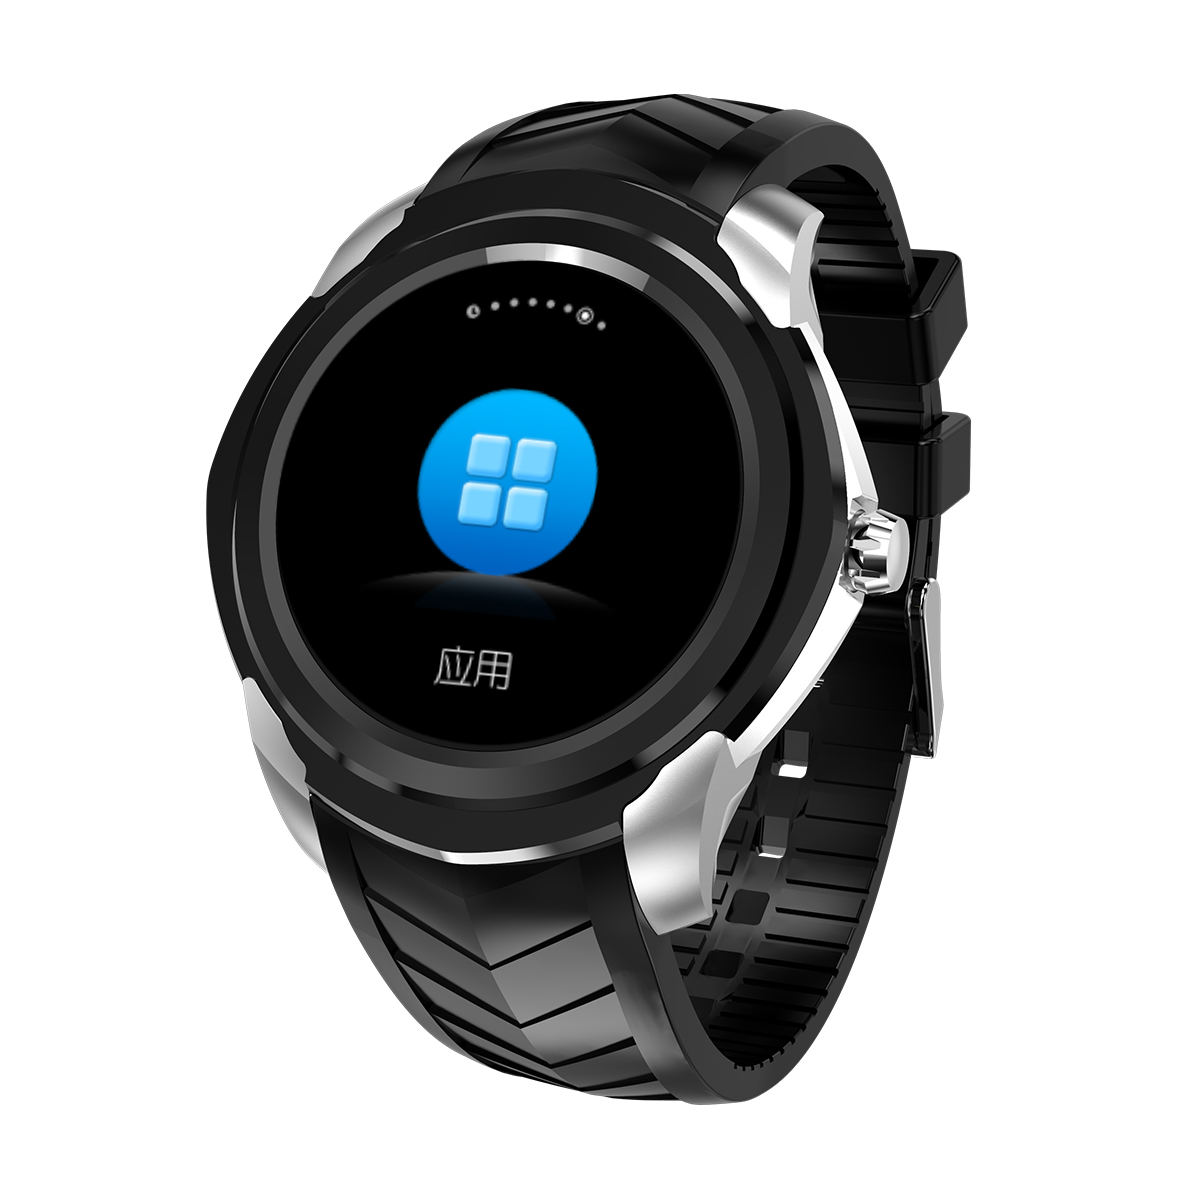 Bakeey C1 GPS Smart Android Watch Men Heart Rate Monitor Pedometer Sports Mode Bluetooth Smart Watch Support 32GBakeey C1 GPS Smart Android Watch Men Heart Rate Monitor Pedometer Sports Mode Bluetooth Smart Watch Support 32G